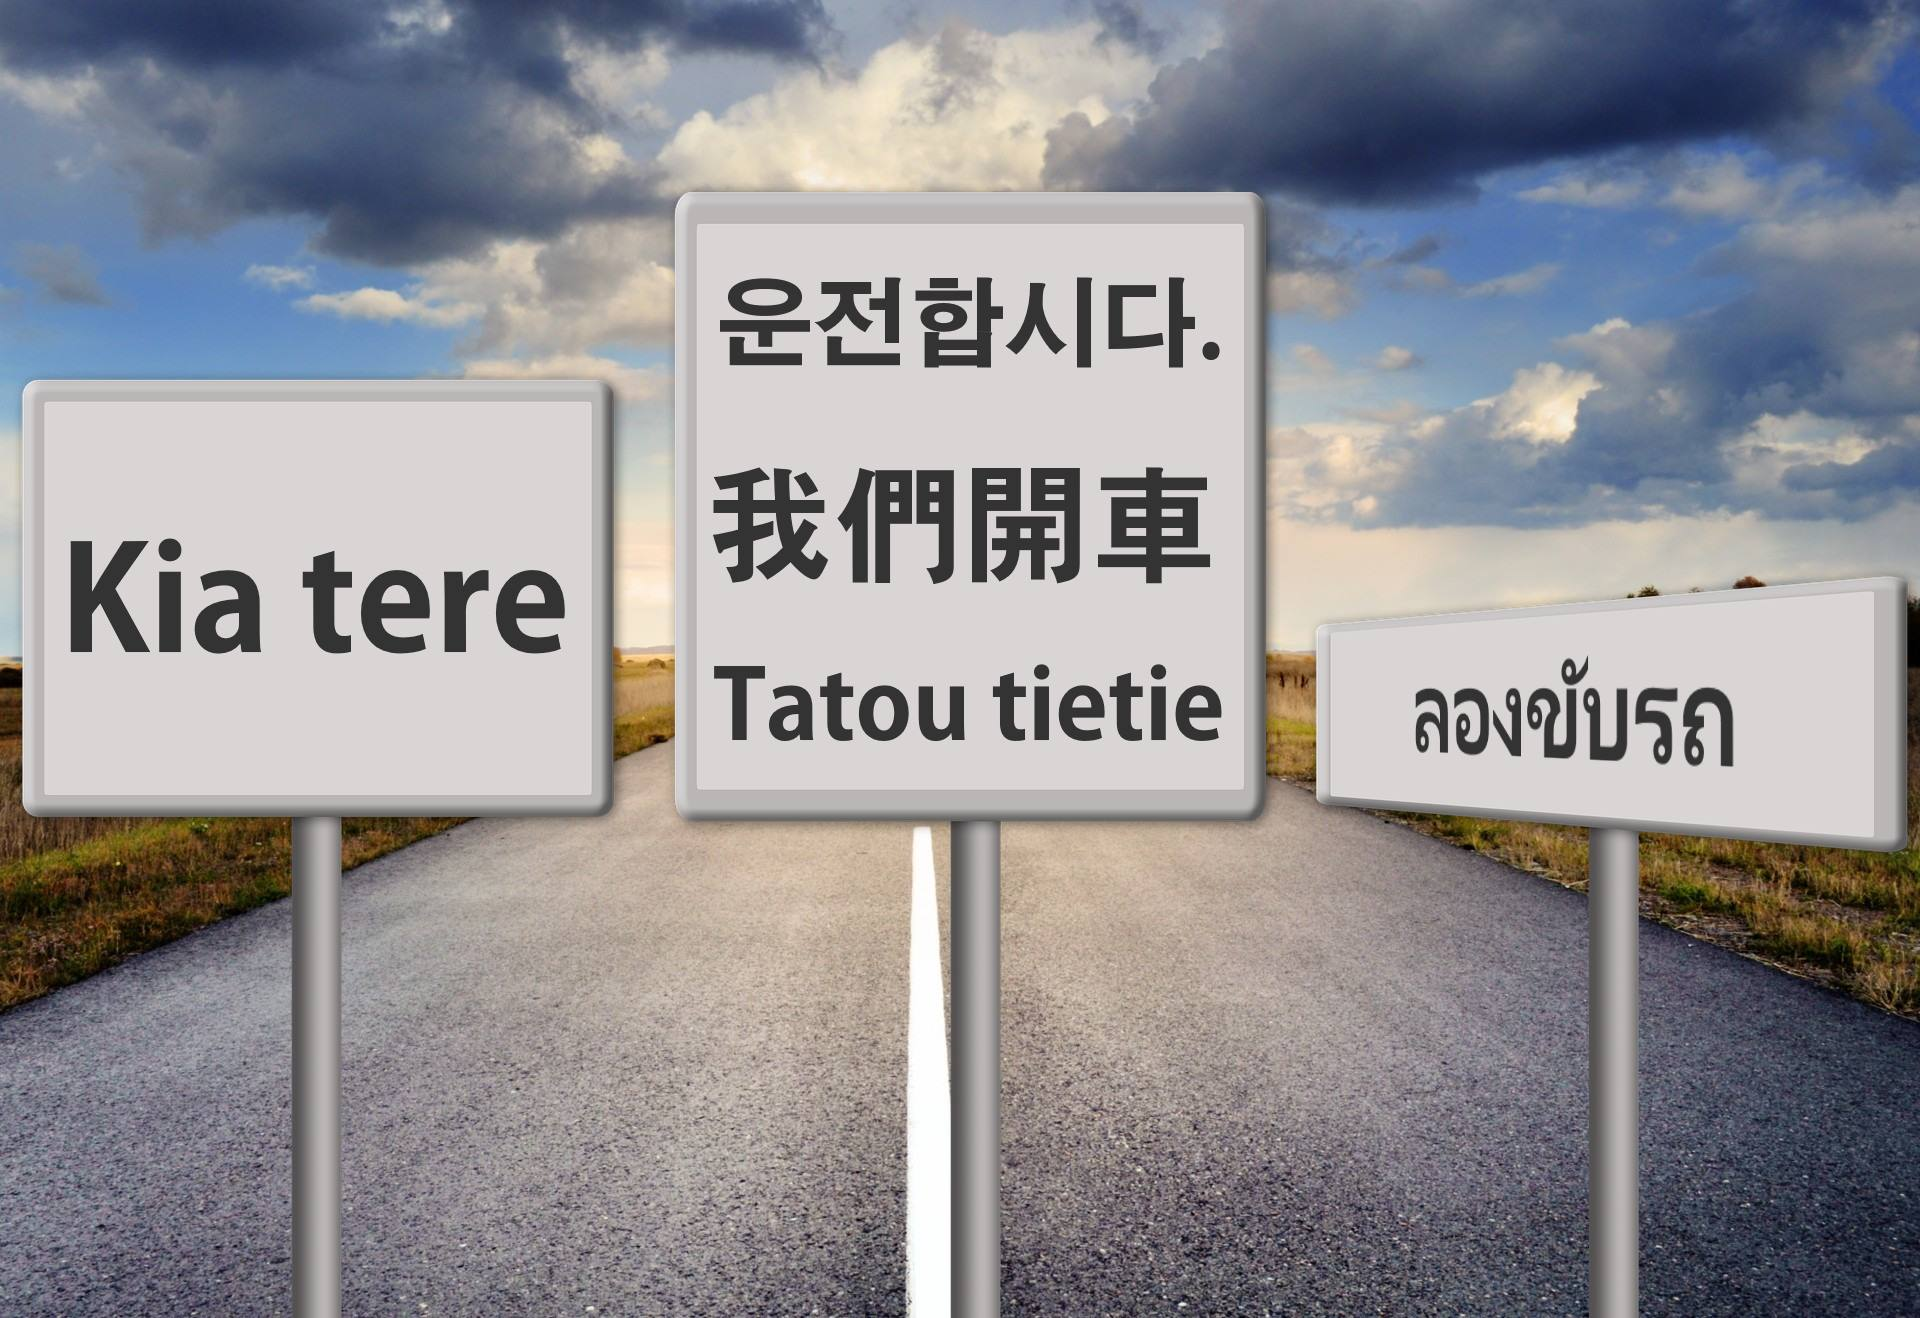 What language can I take my driving test in?